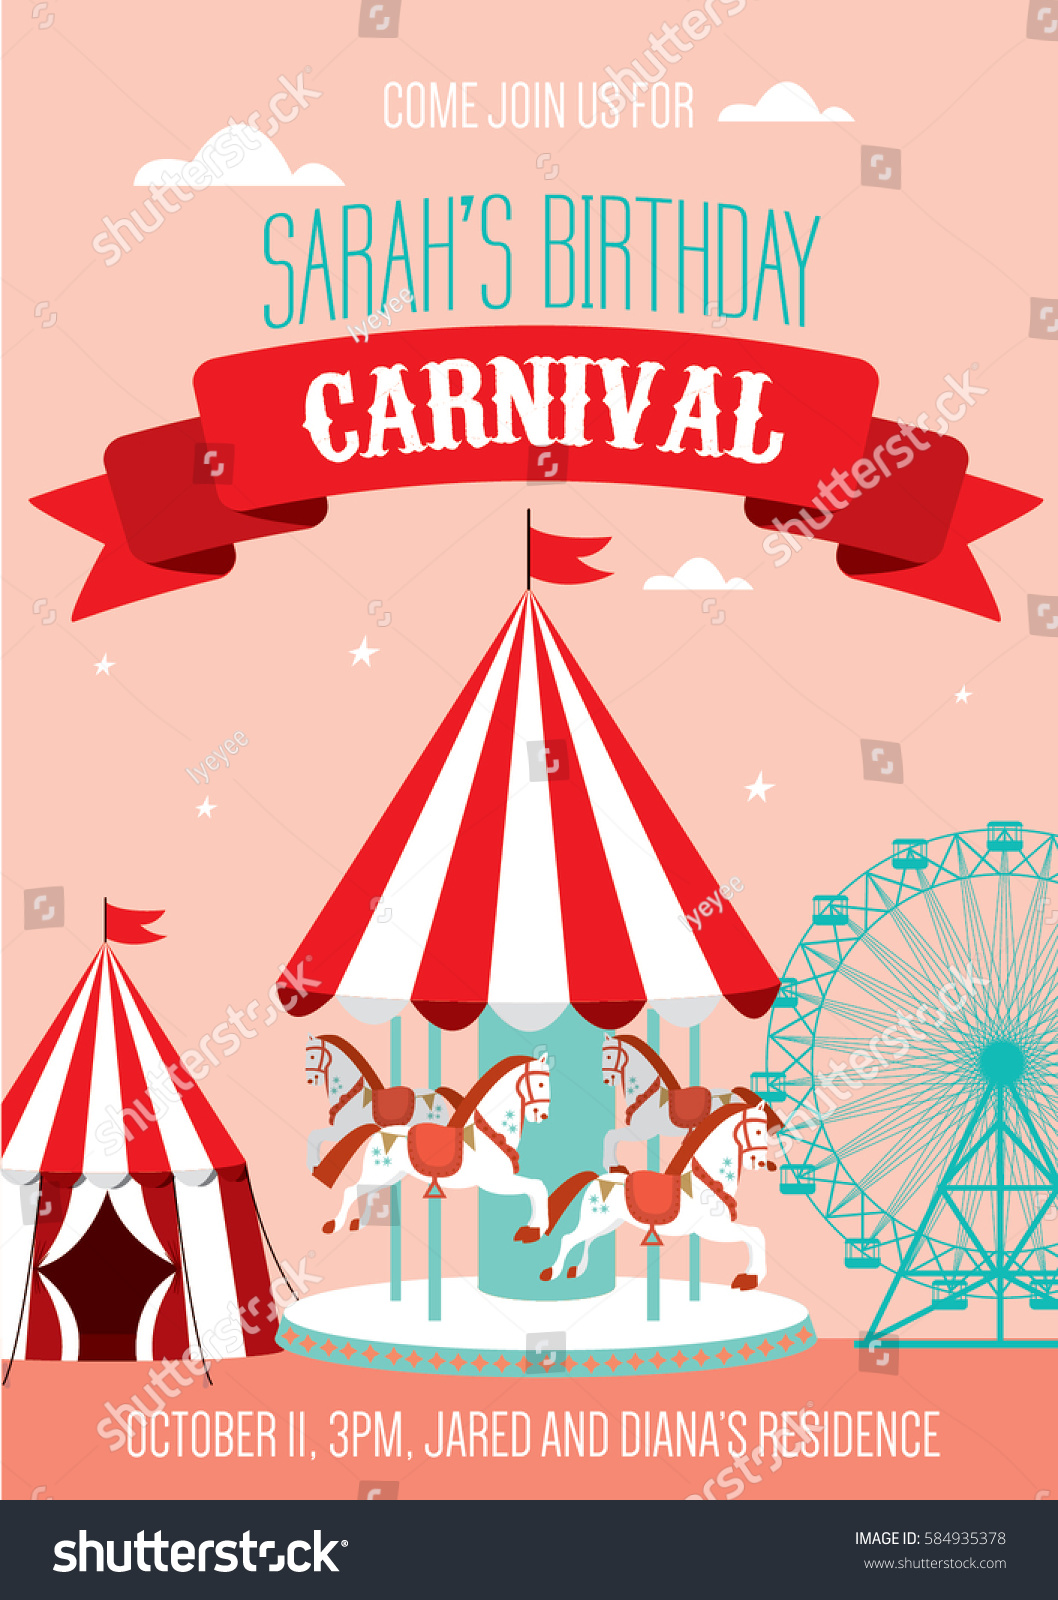 Fun Fair Carnival Birthday Invitation Template Stock Vector